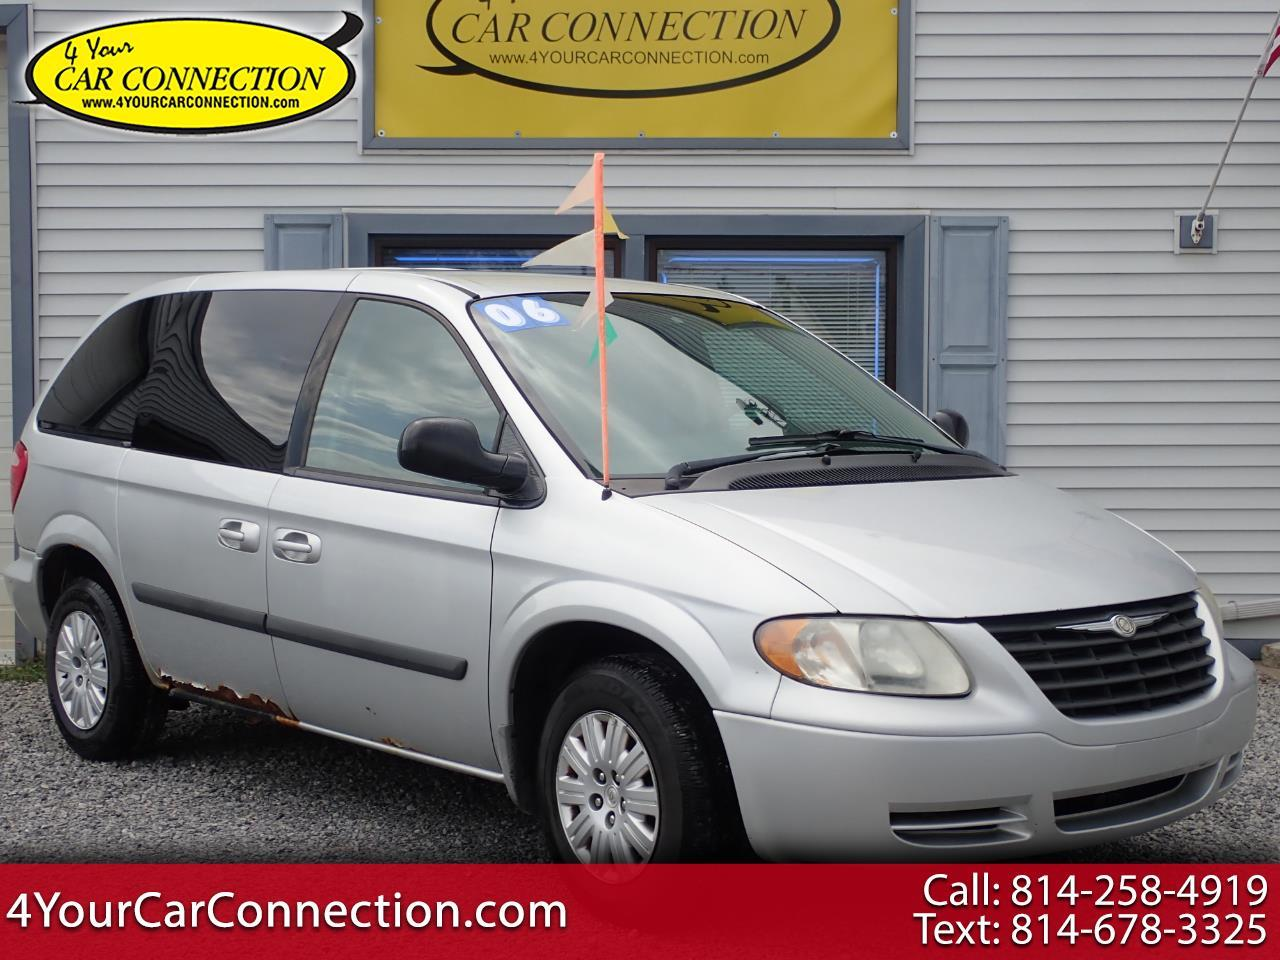 2006 Chrysler Town & Country $795